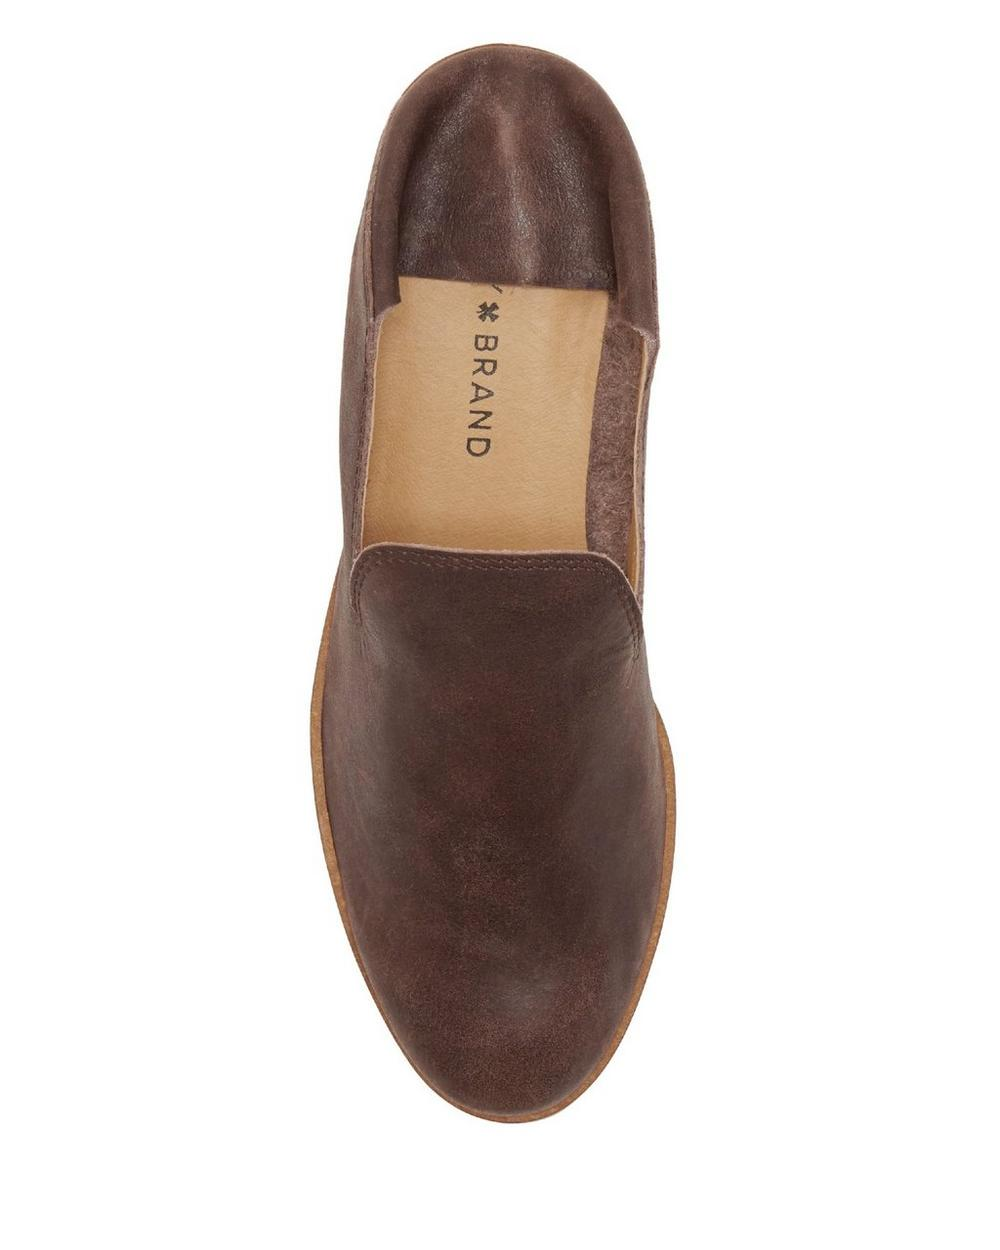 CAHILL LEATHER FLAT, image 4